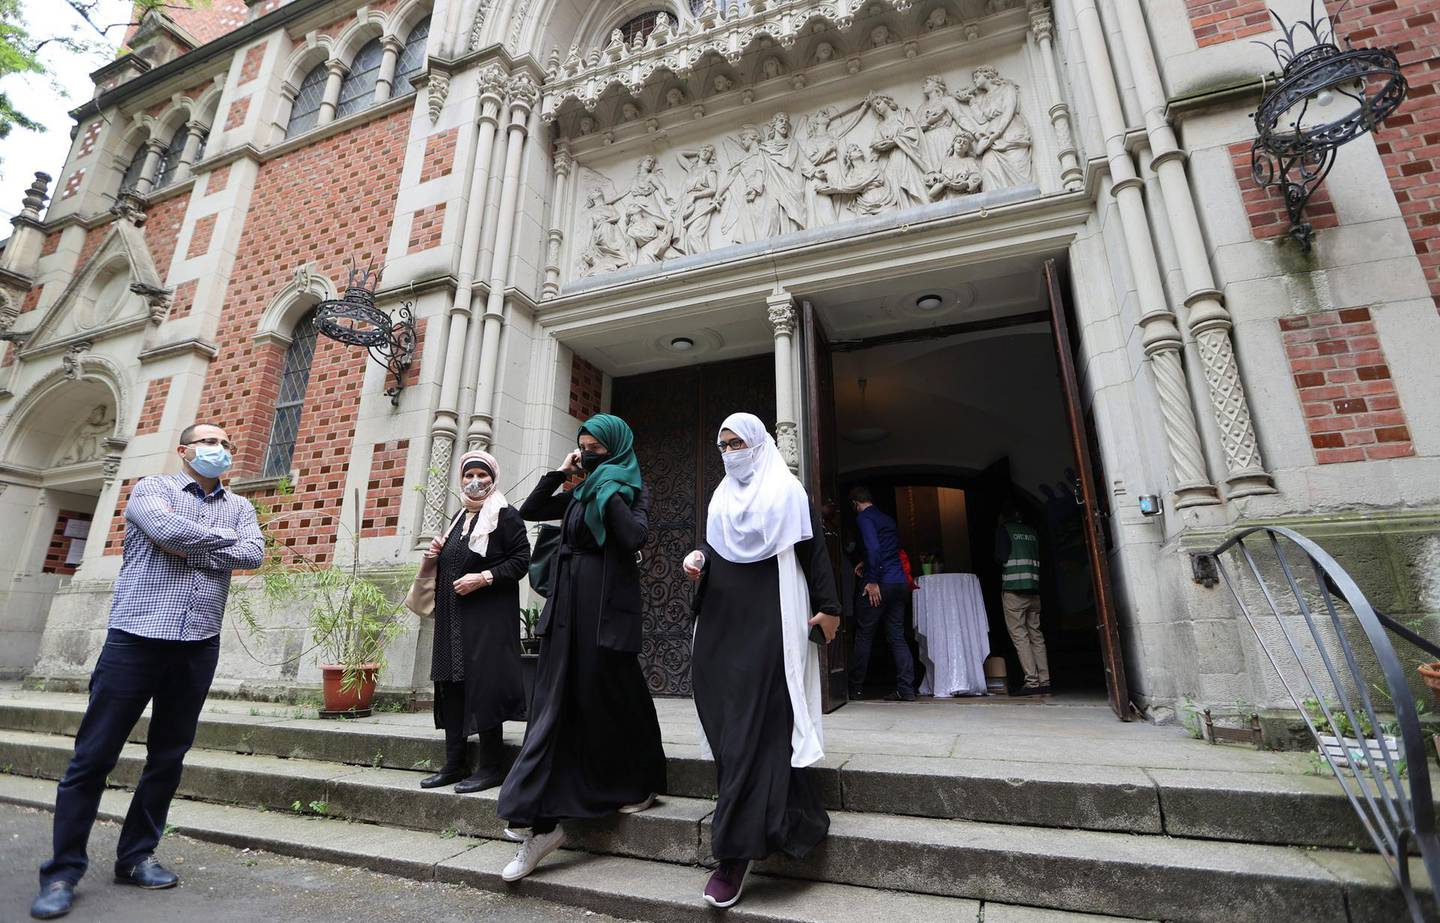 Muslims leave the evangelical church of St. Martha's parish, after their Friday prayers, as the community mosque can't fit everybody in due to social distancing rules, amid the coronavirus disease (COVID-19) outbreak in Berlin, Germany, May 22, 2020.   REUTERS/Fabrizio Bensch